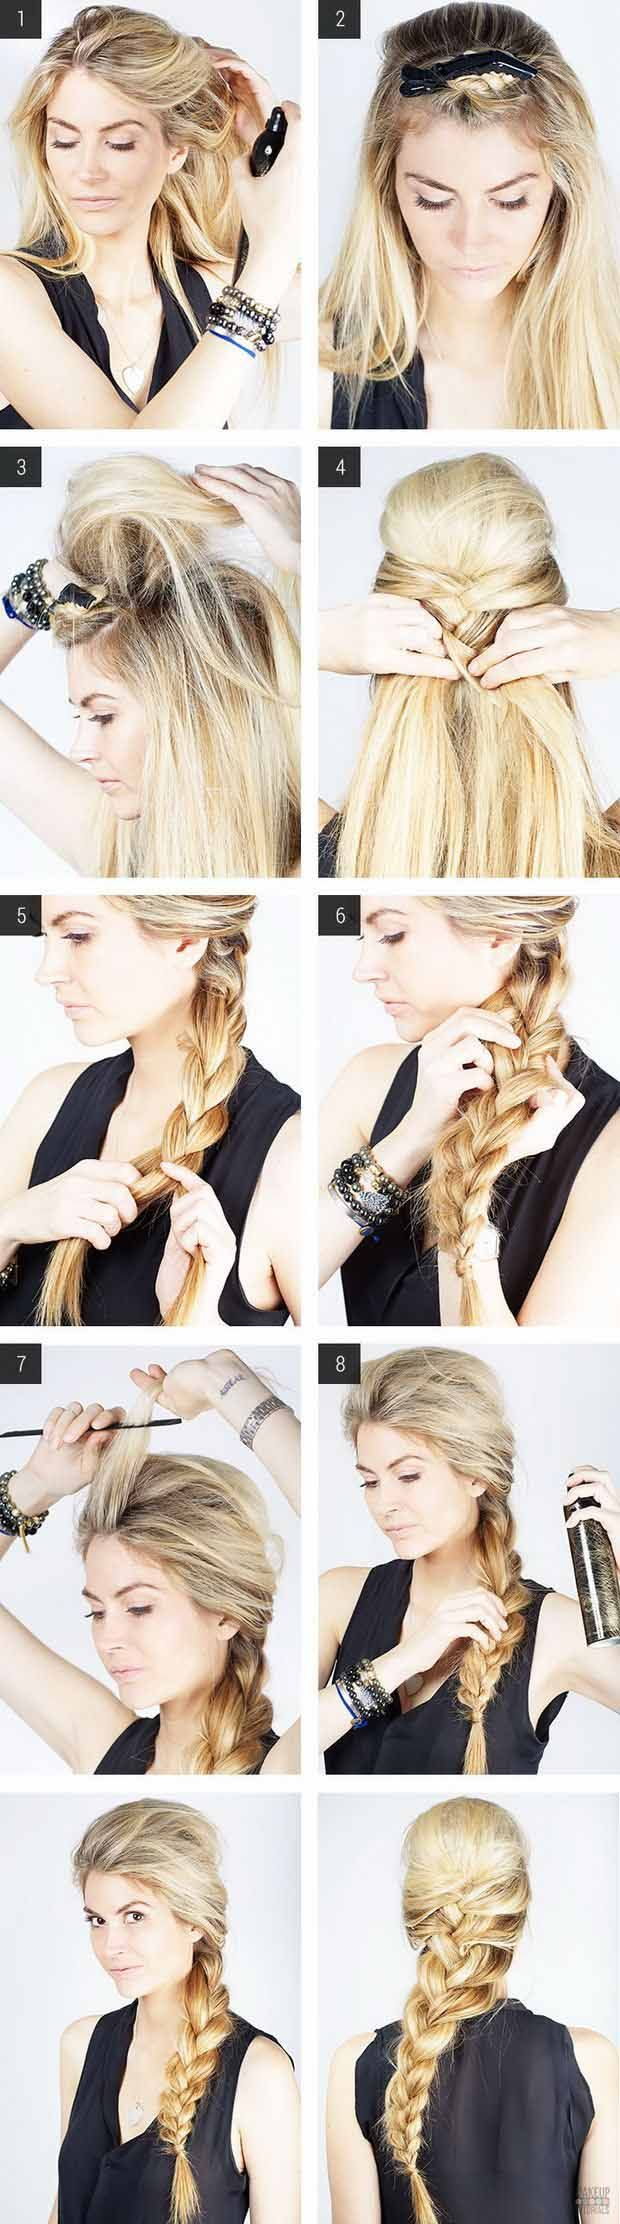 Messy French Braid | Step By Step Easy Hair Tutorial for Work by Makeup Tutorial...